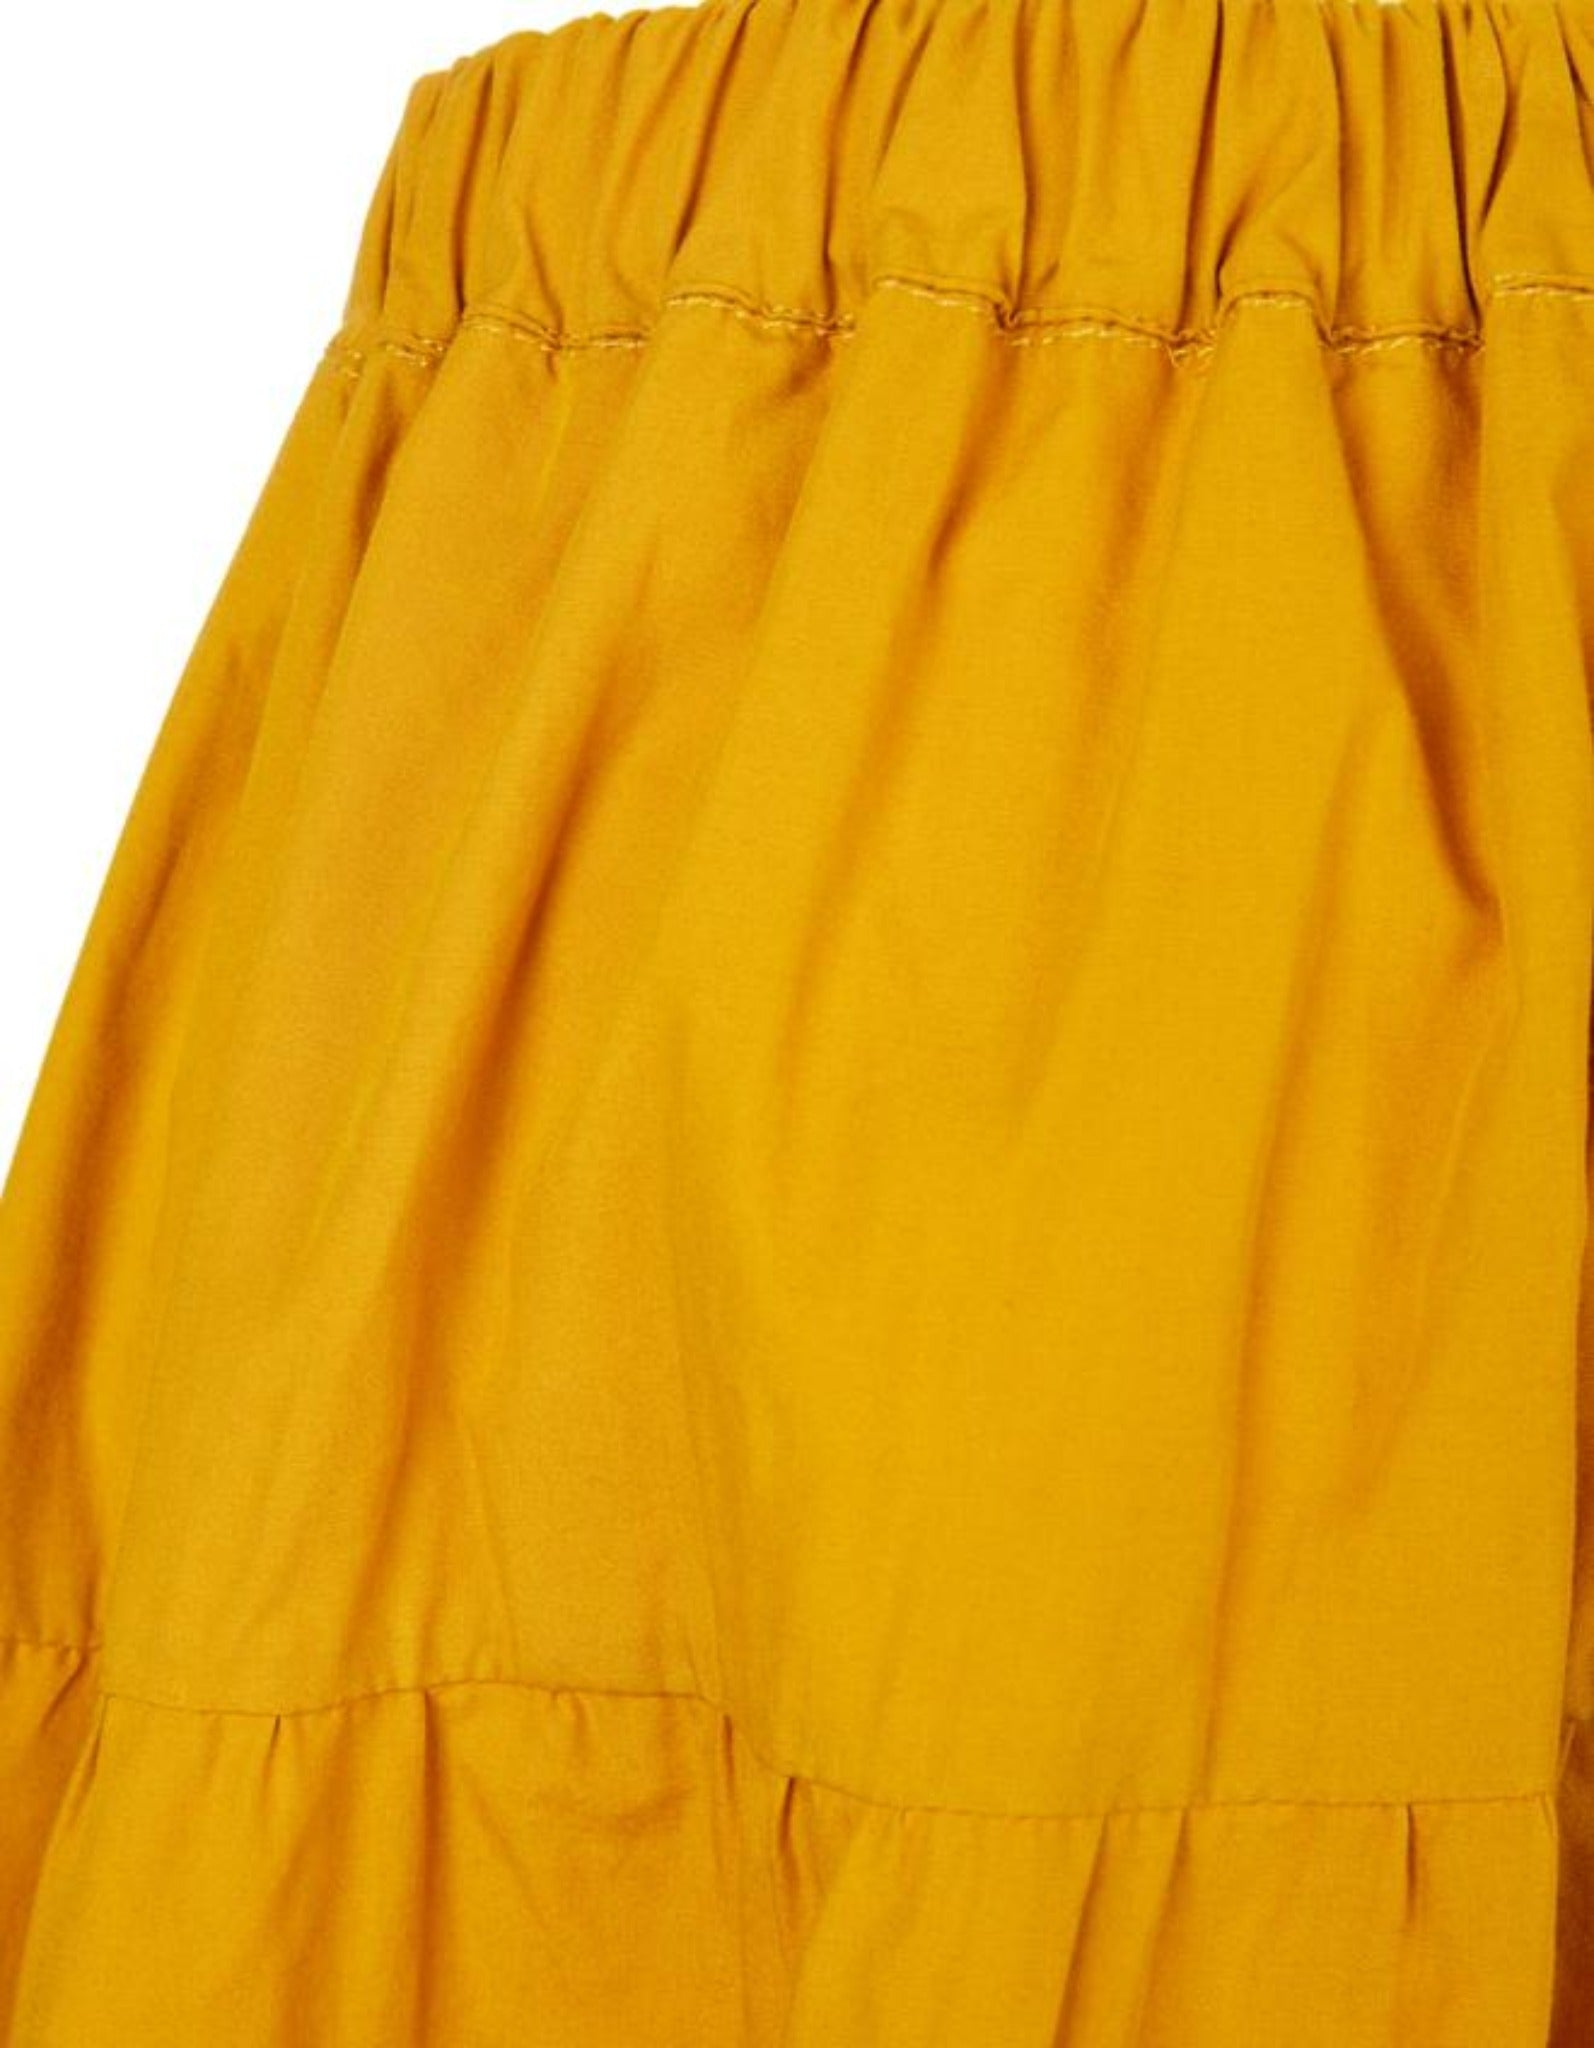 M'A KIDS WAISTBAND SKIRT IN OCHRE